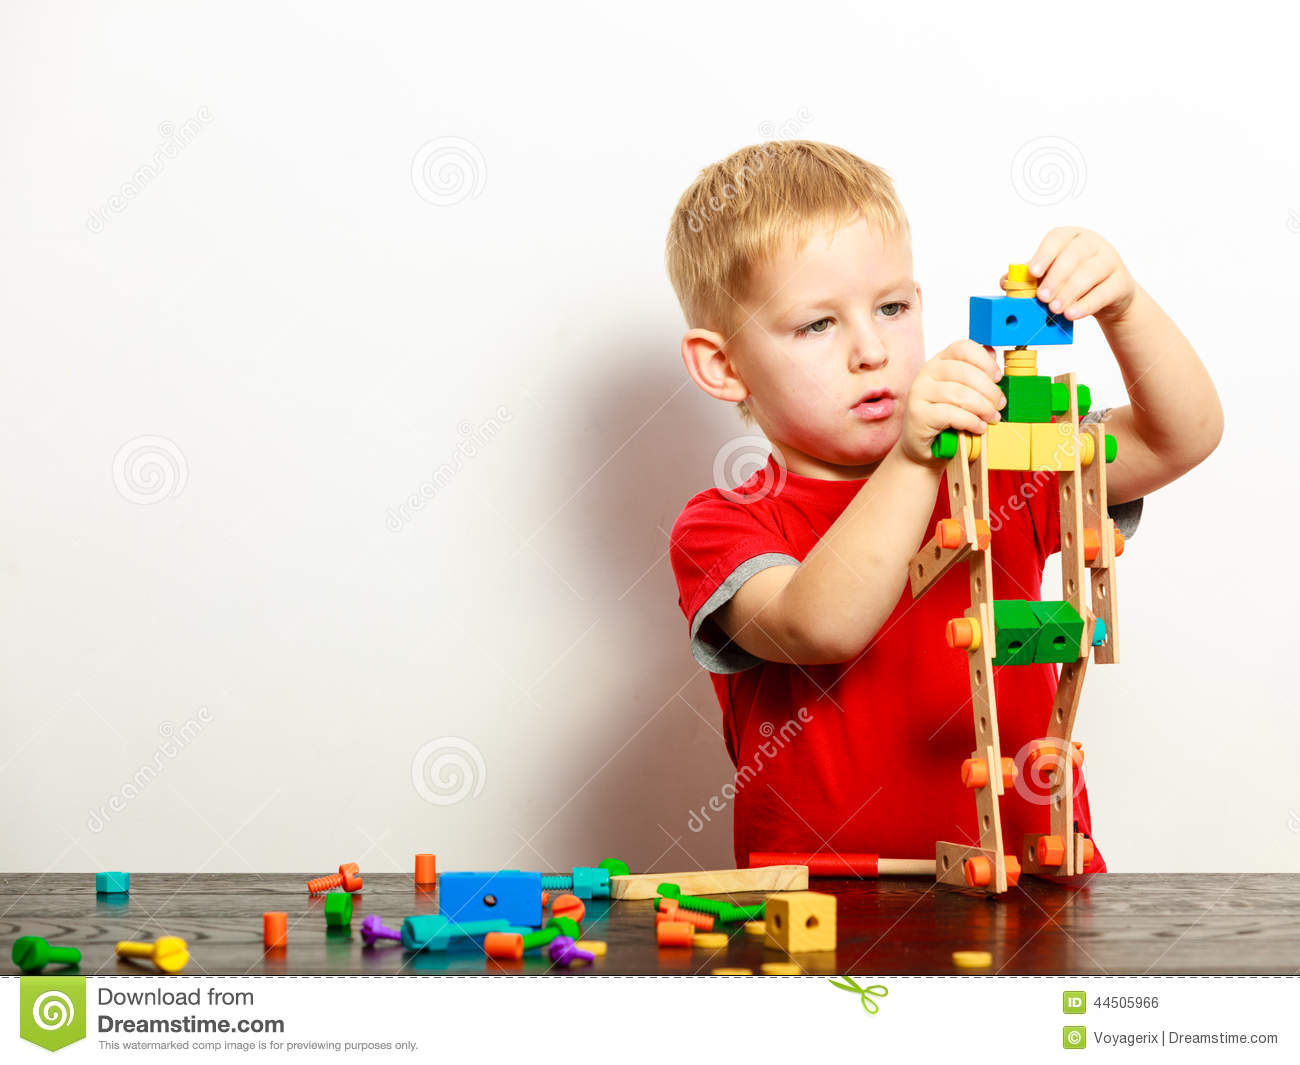 Building Toys For Little Boys : Little boy child playing with building blocks toys